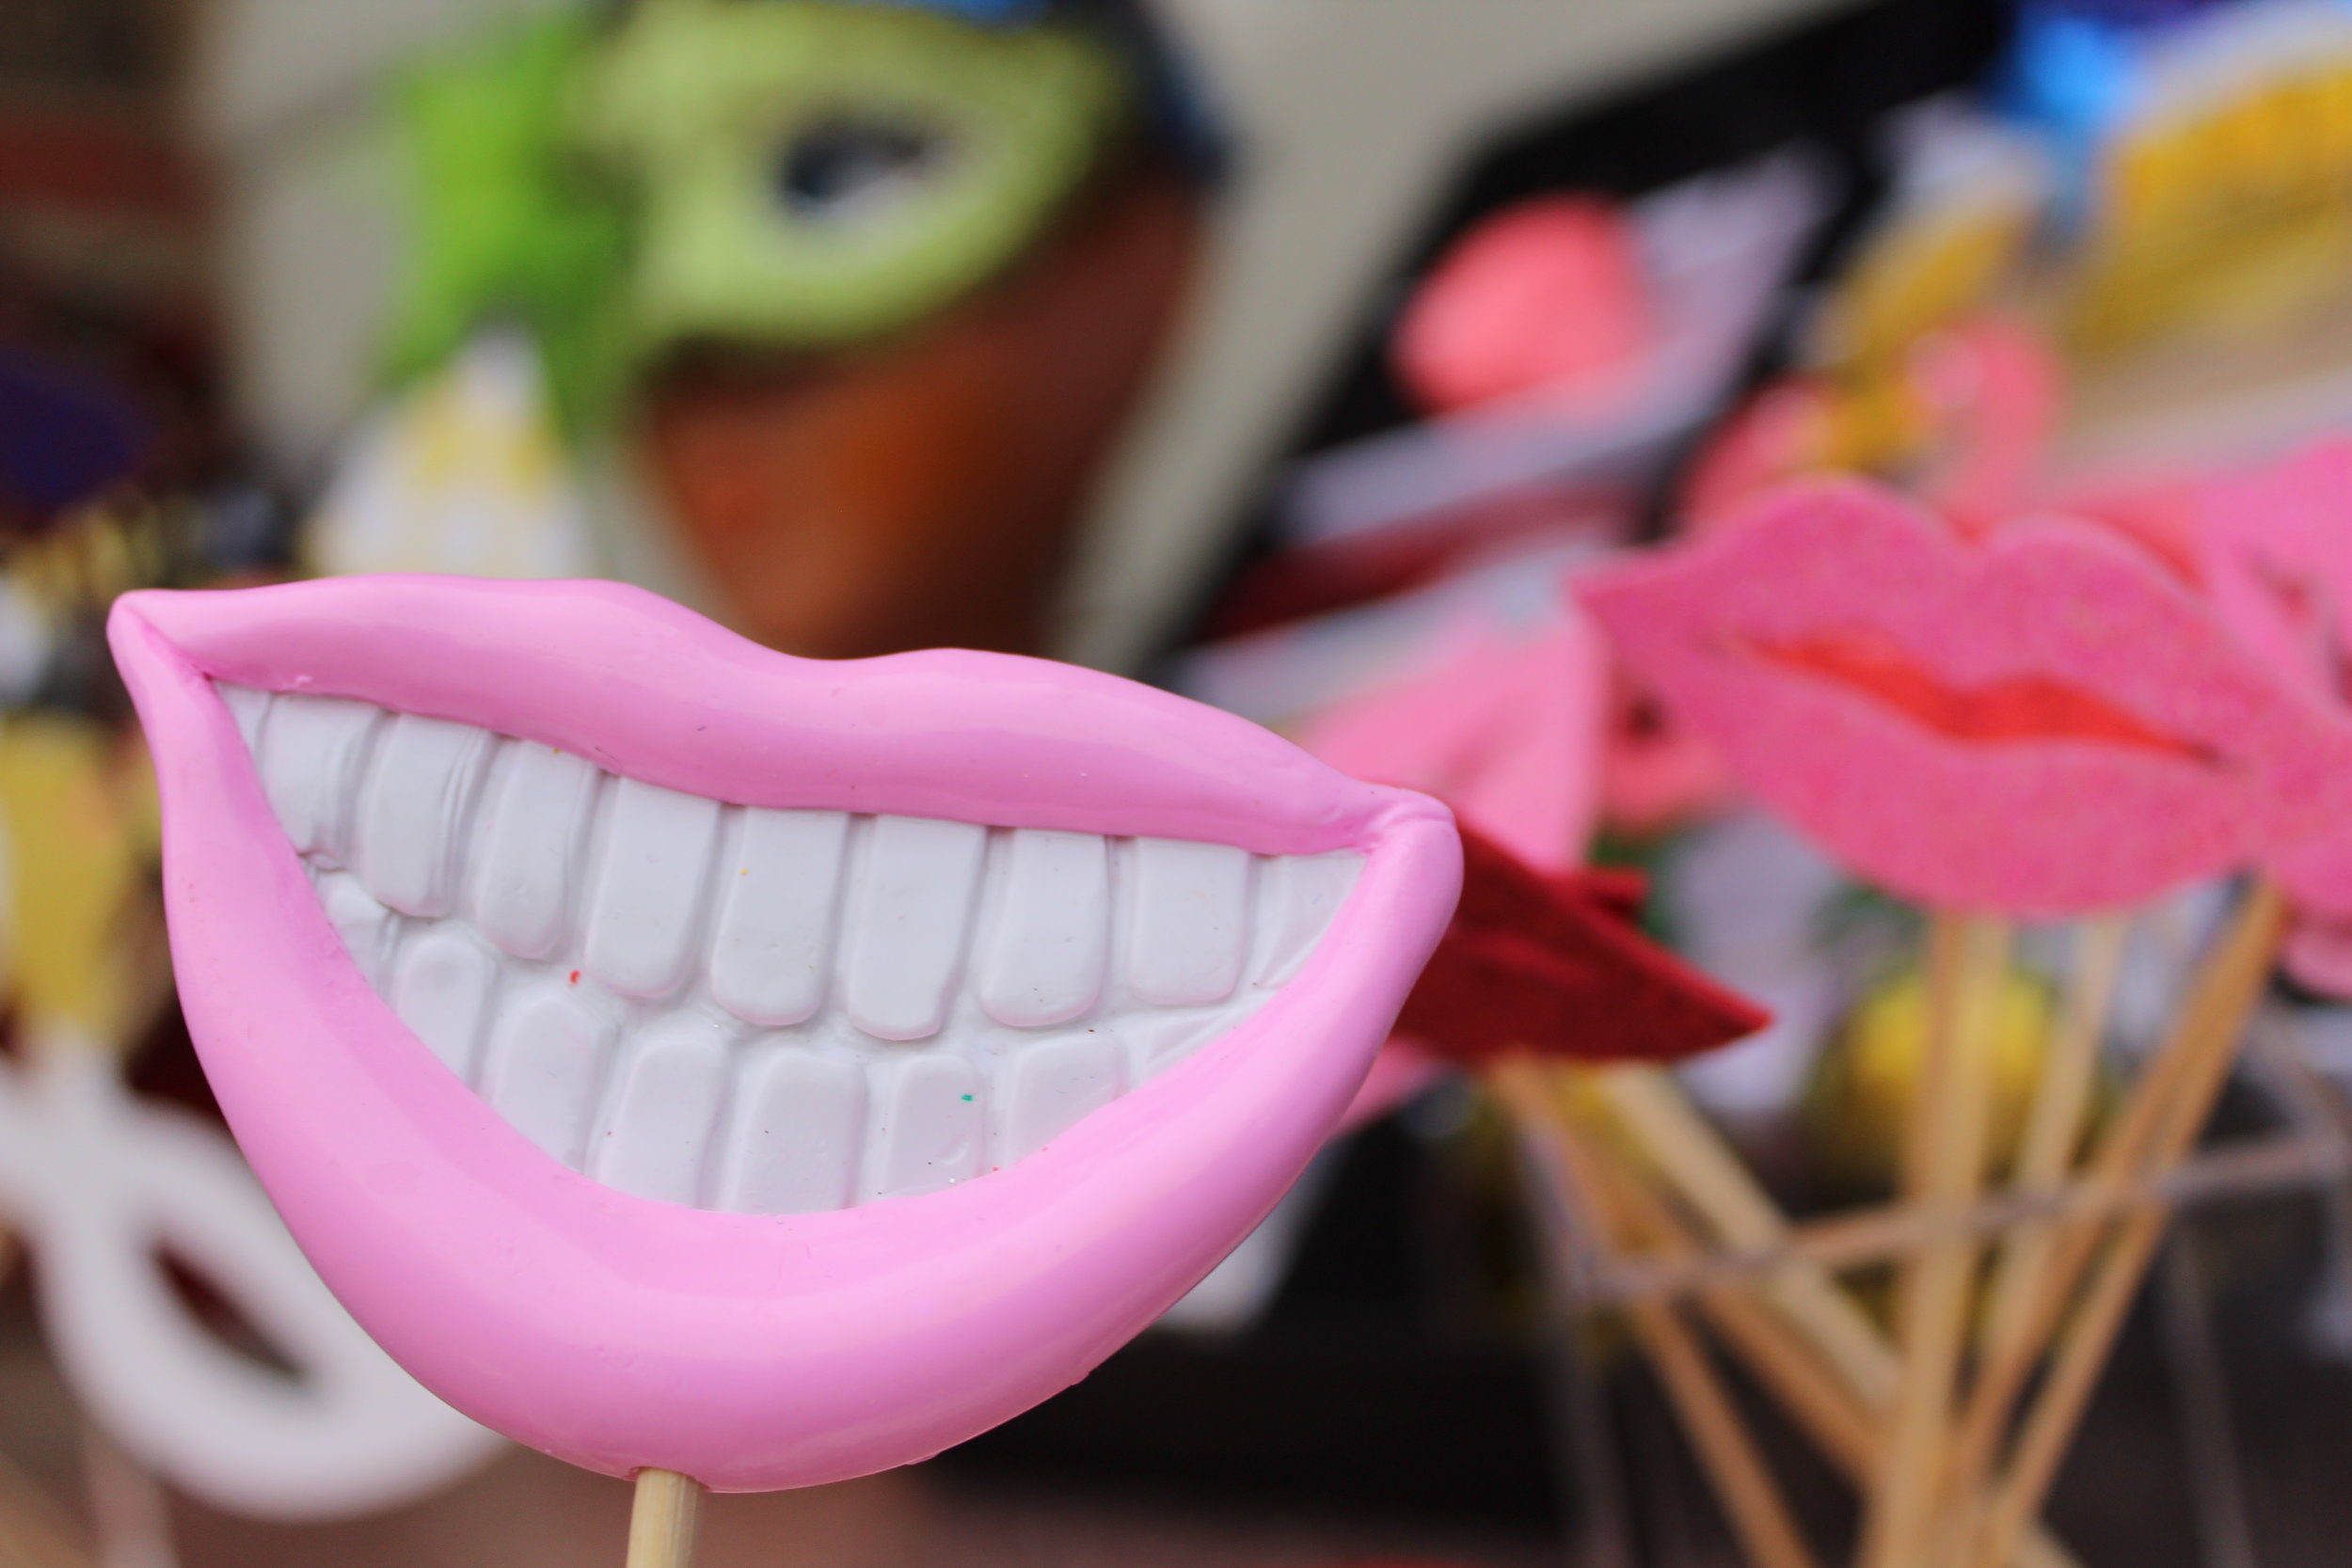 Get lippy! - Take a look at our mad props, choose from a wide range of masks, wigs, hats and things on sticks! Which one is your fave? Ours is the creepy rubber cat!